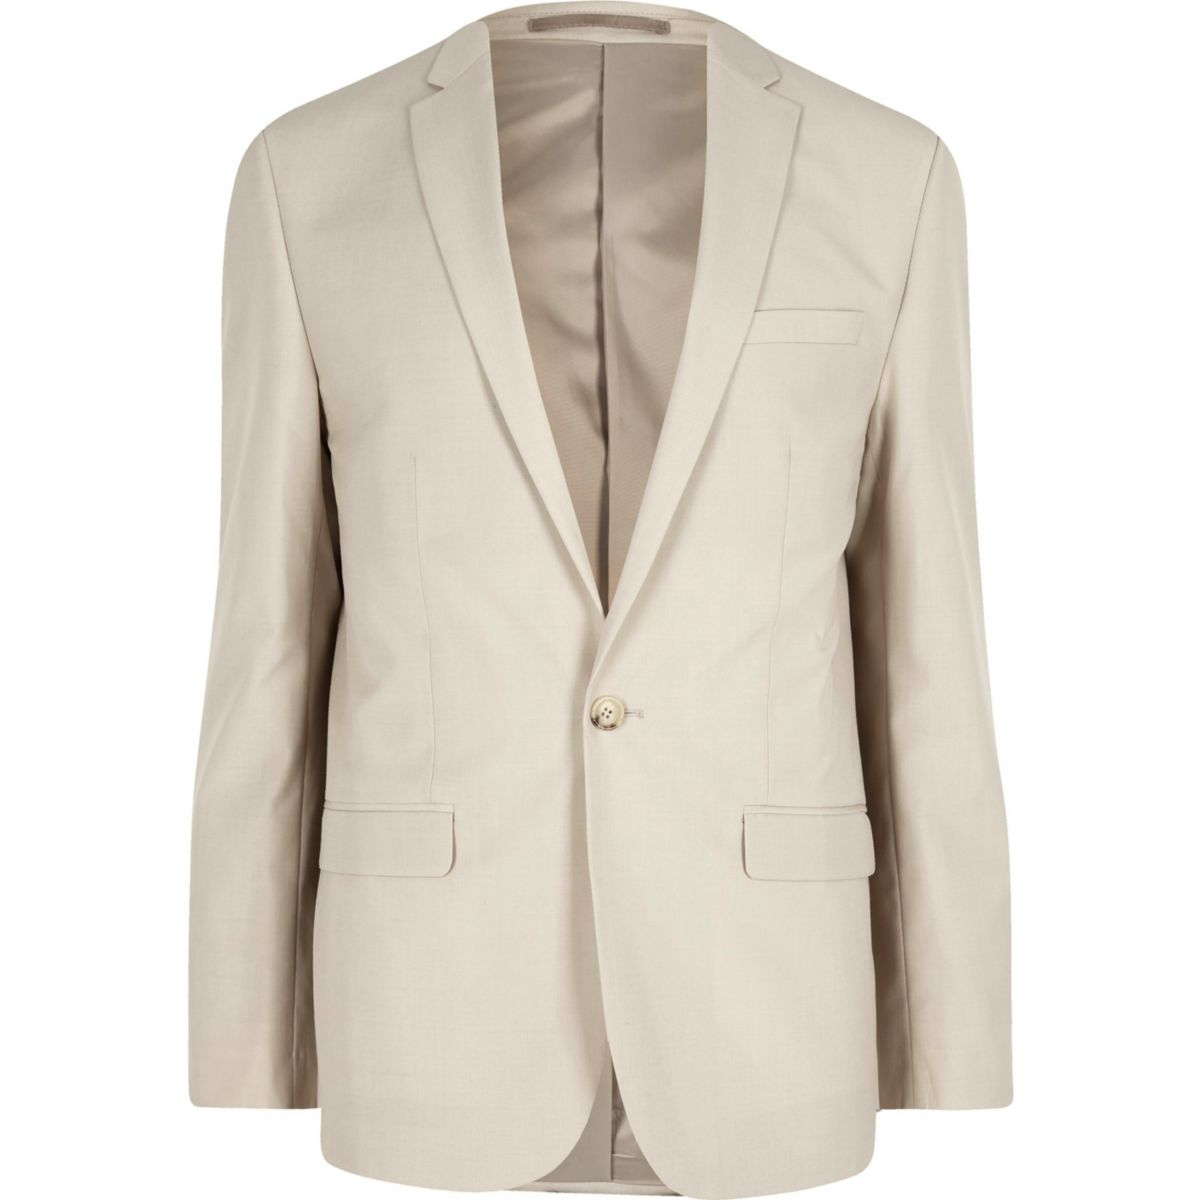 Cream slim fit suit jacket - Suits - Sale - men